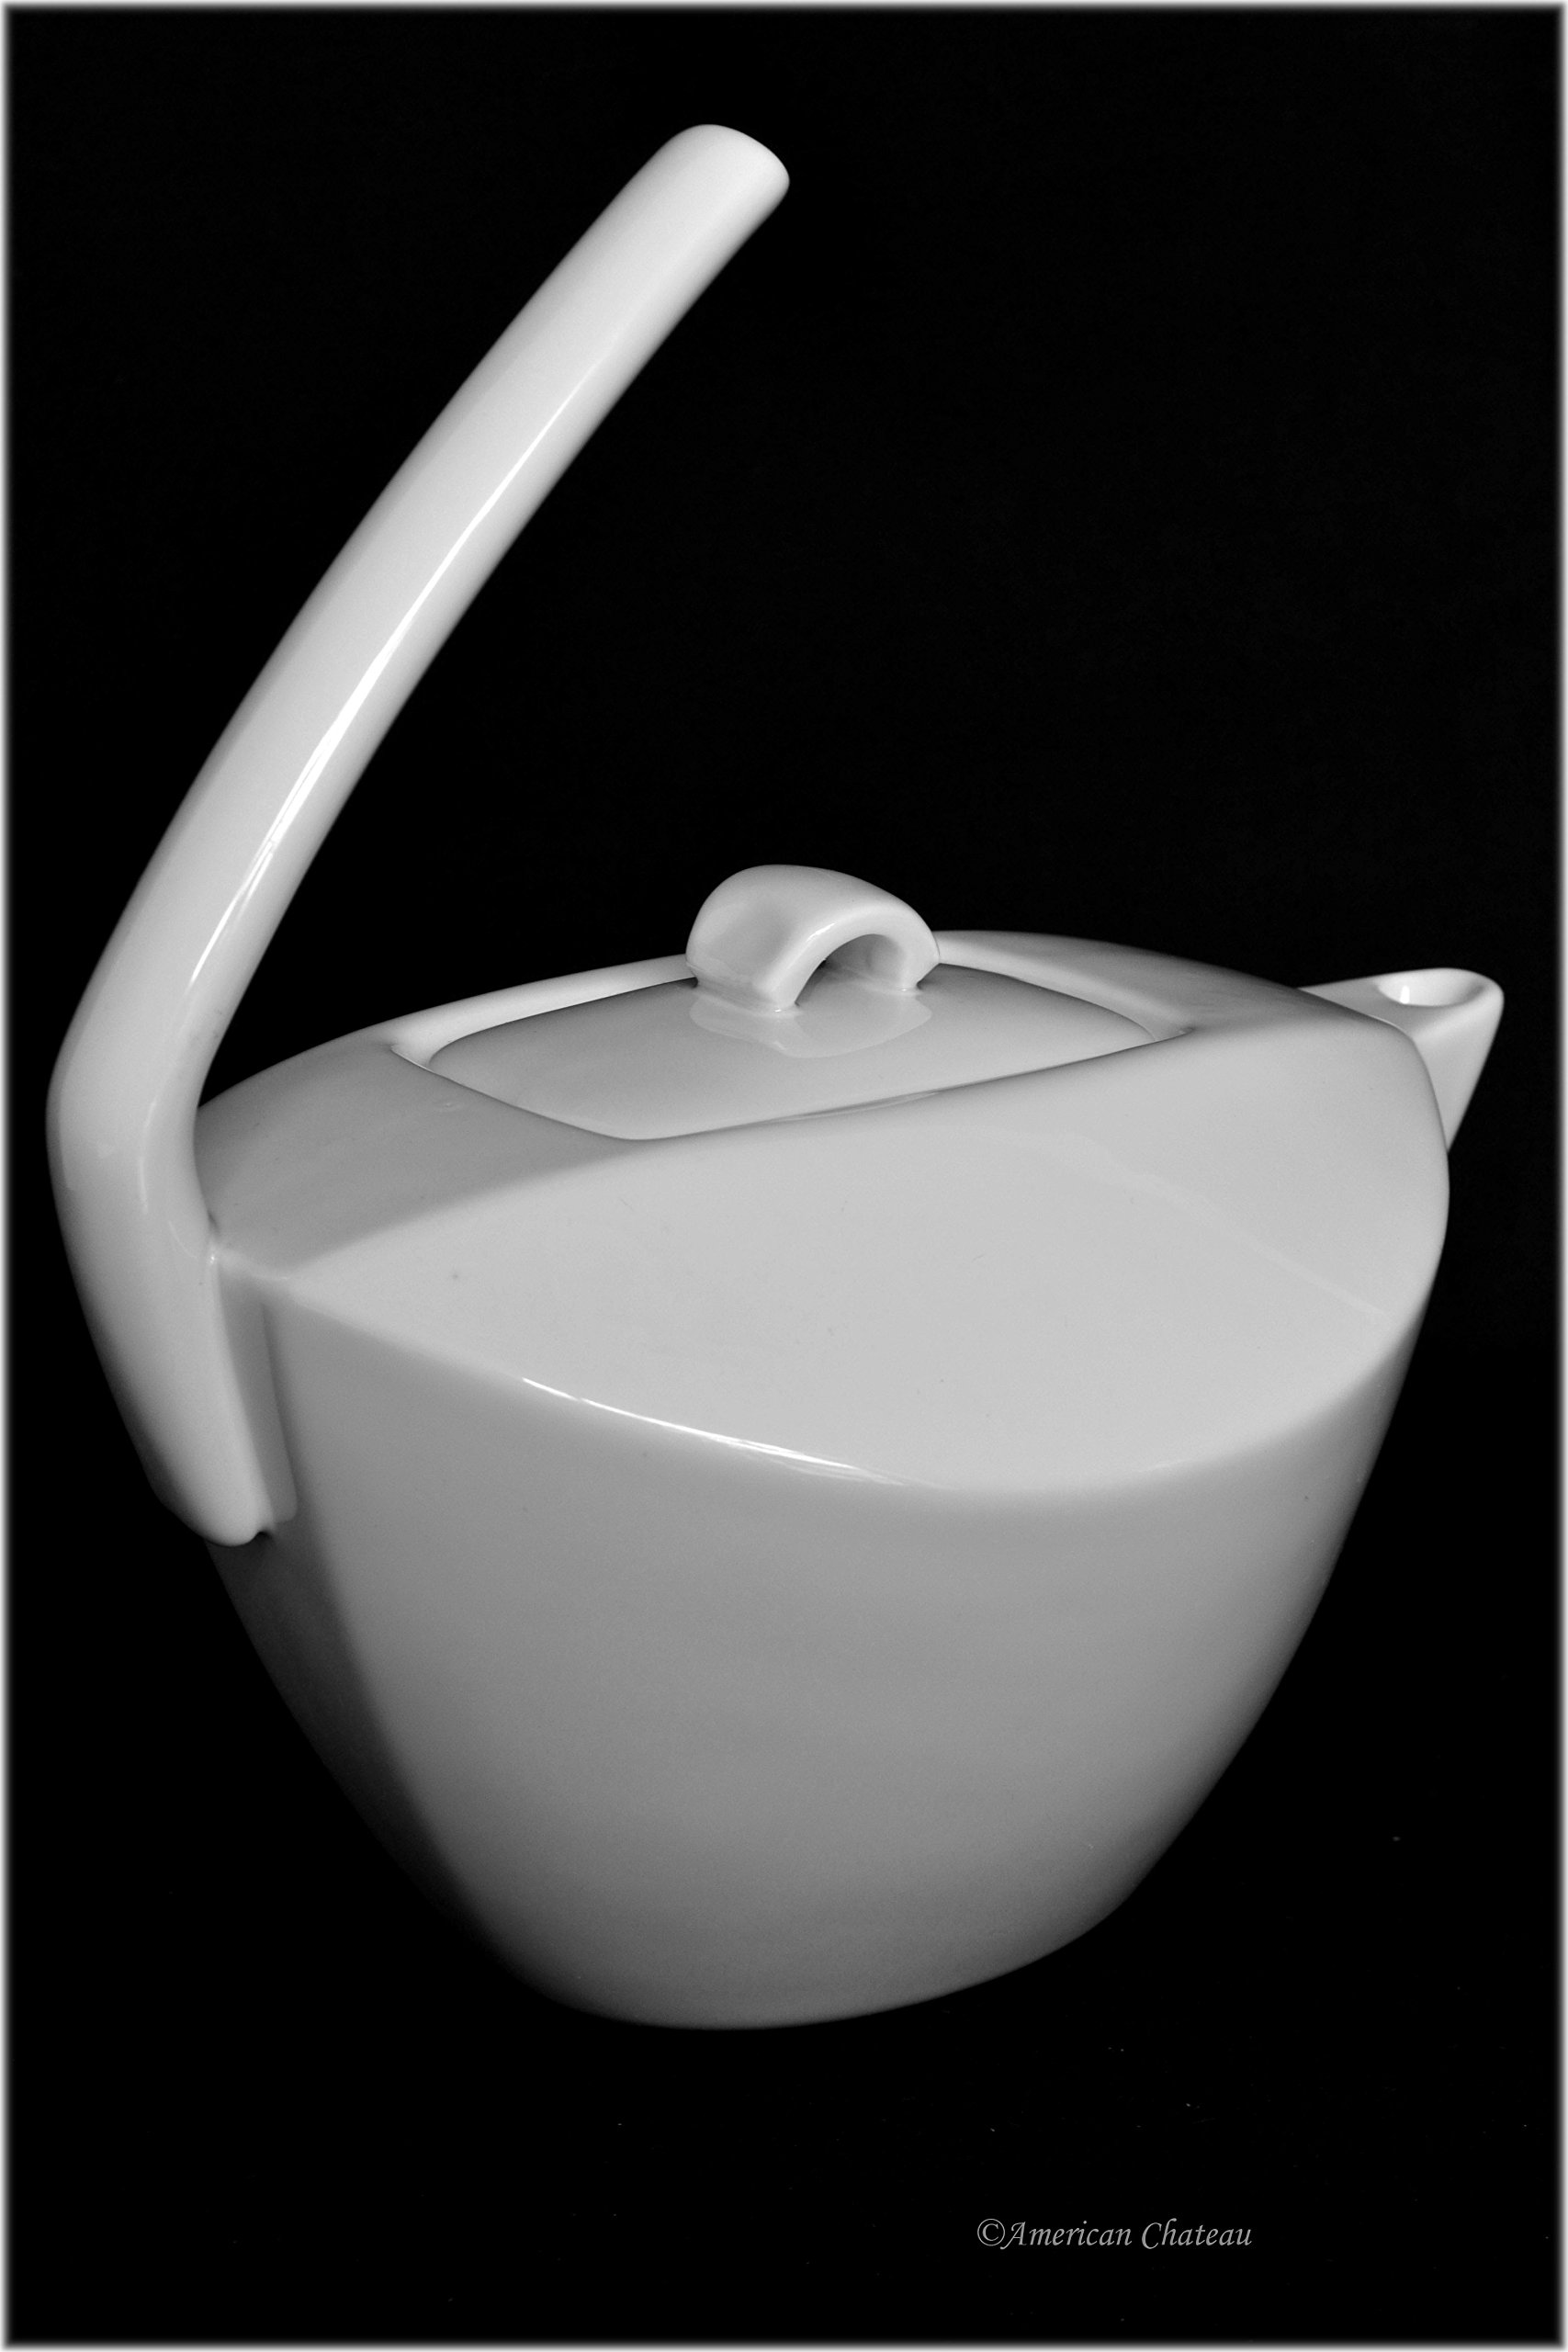 Modern Asian 32oz White Porcelain Hotel-Style Teapot with Lid and Funky Handle